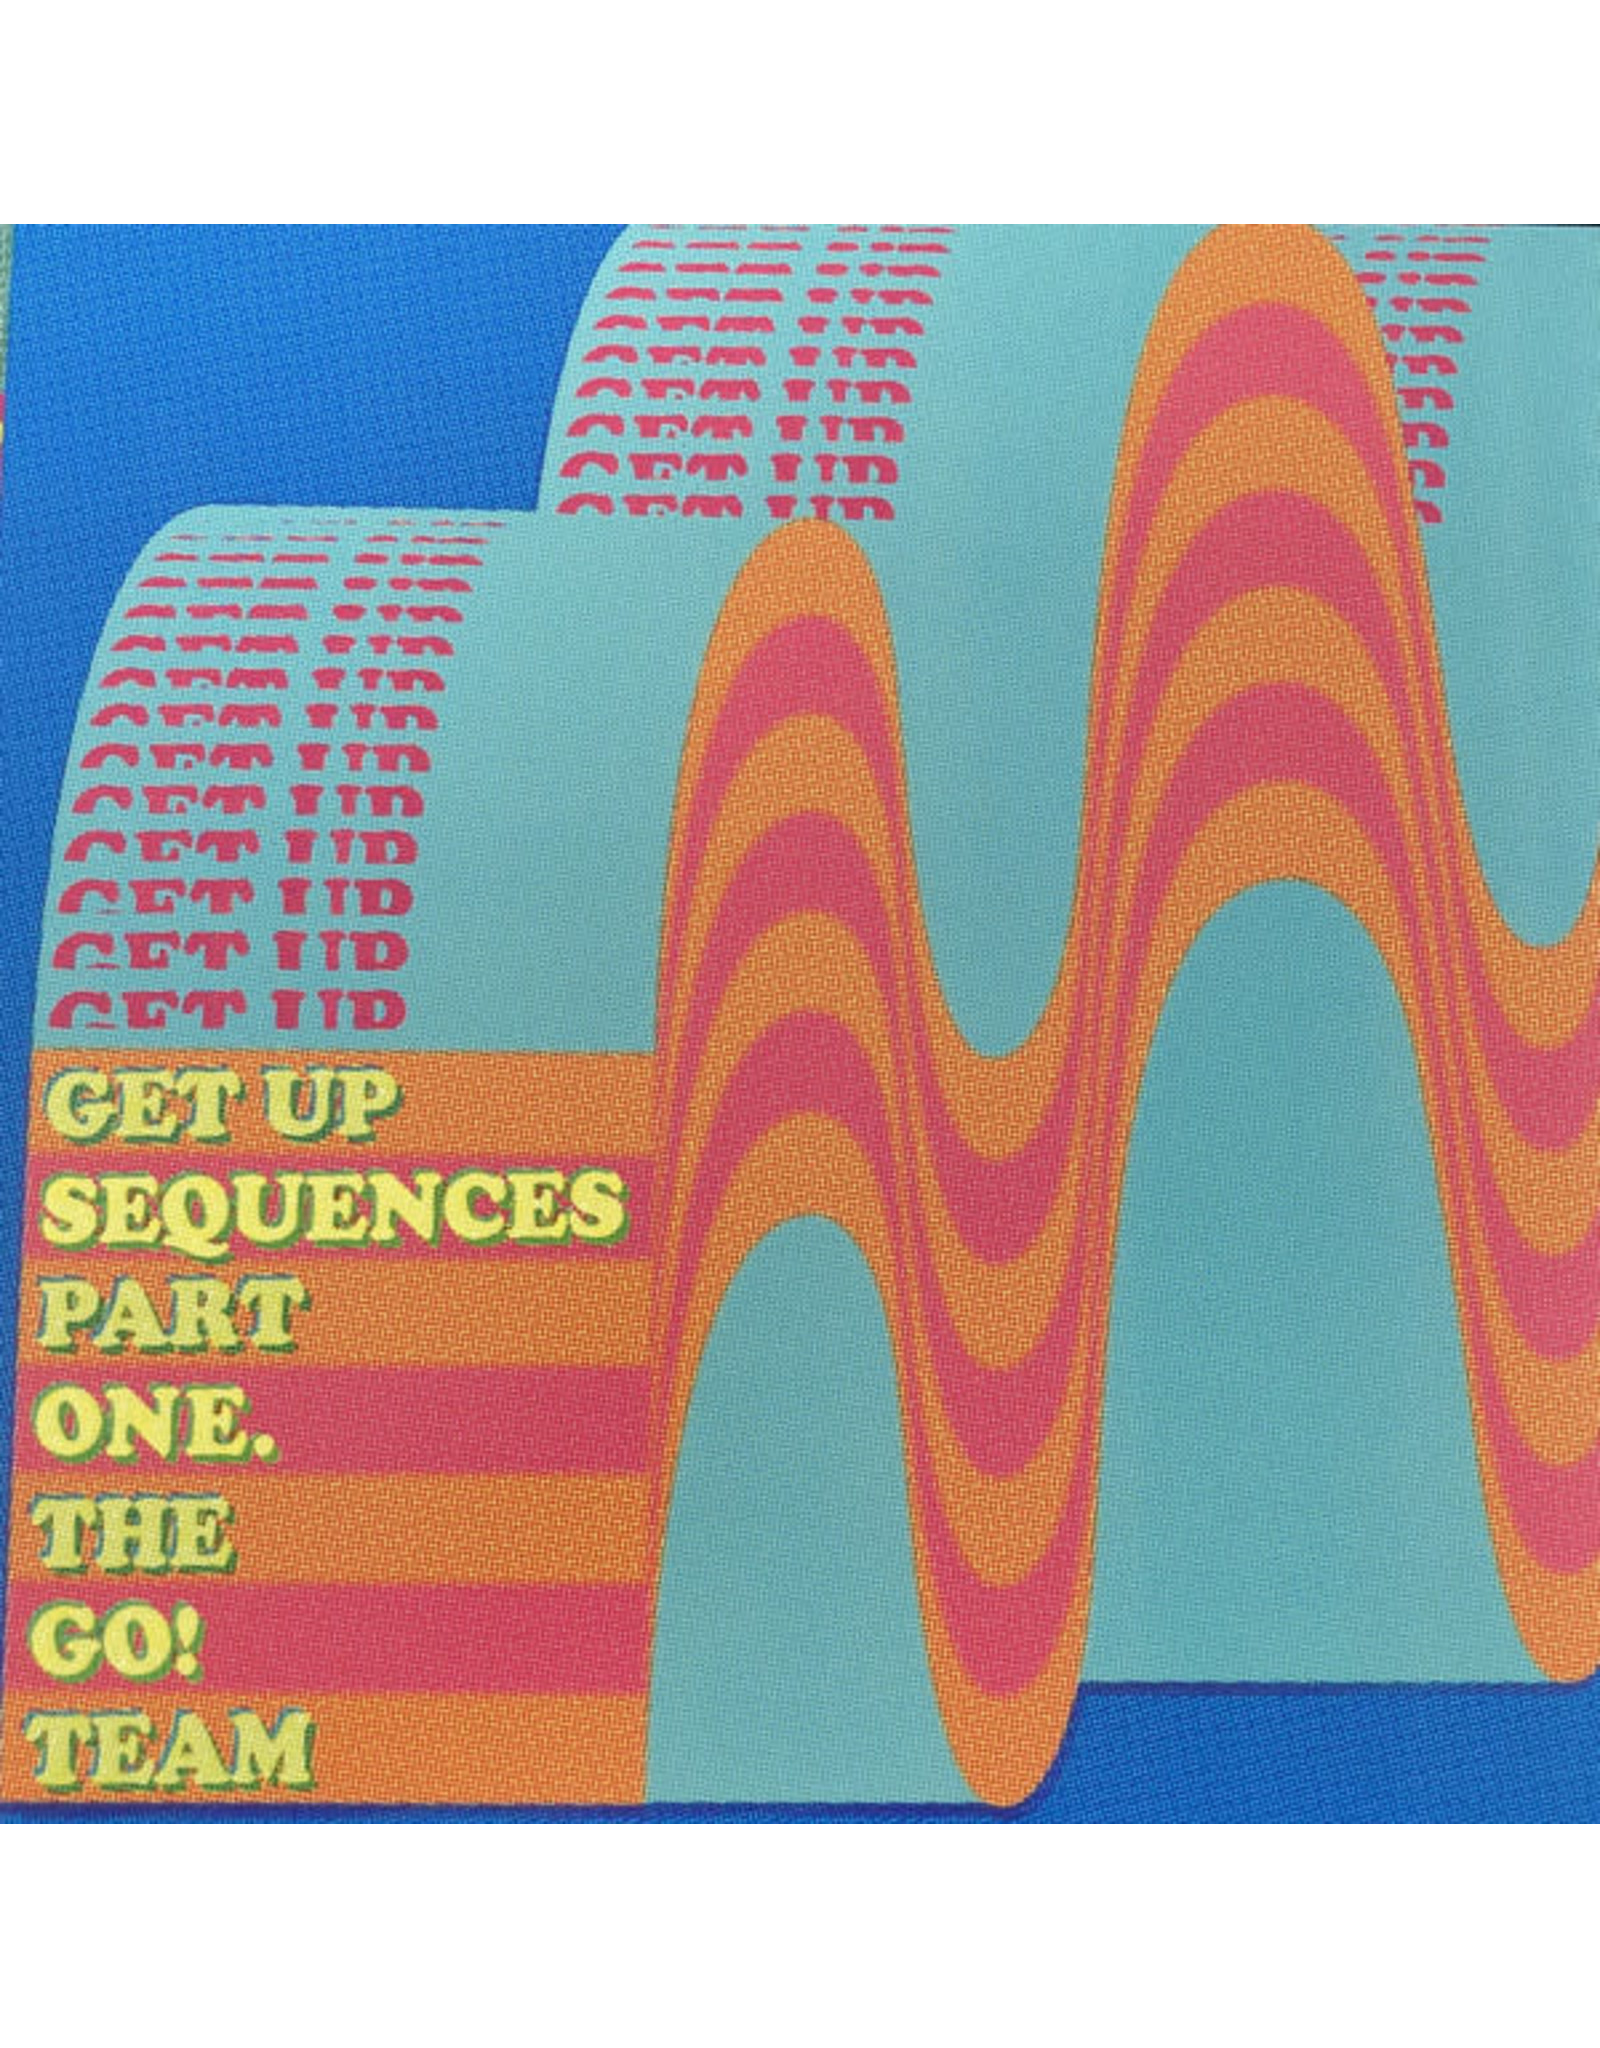 Go! Team, The - Get Up Sequences Part One LP